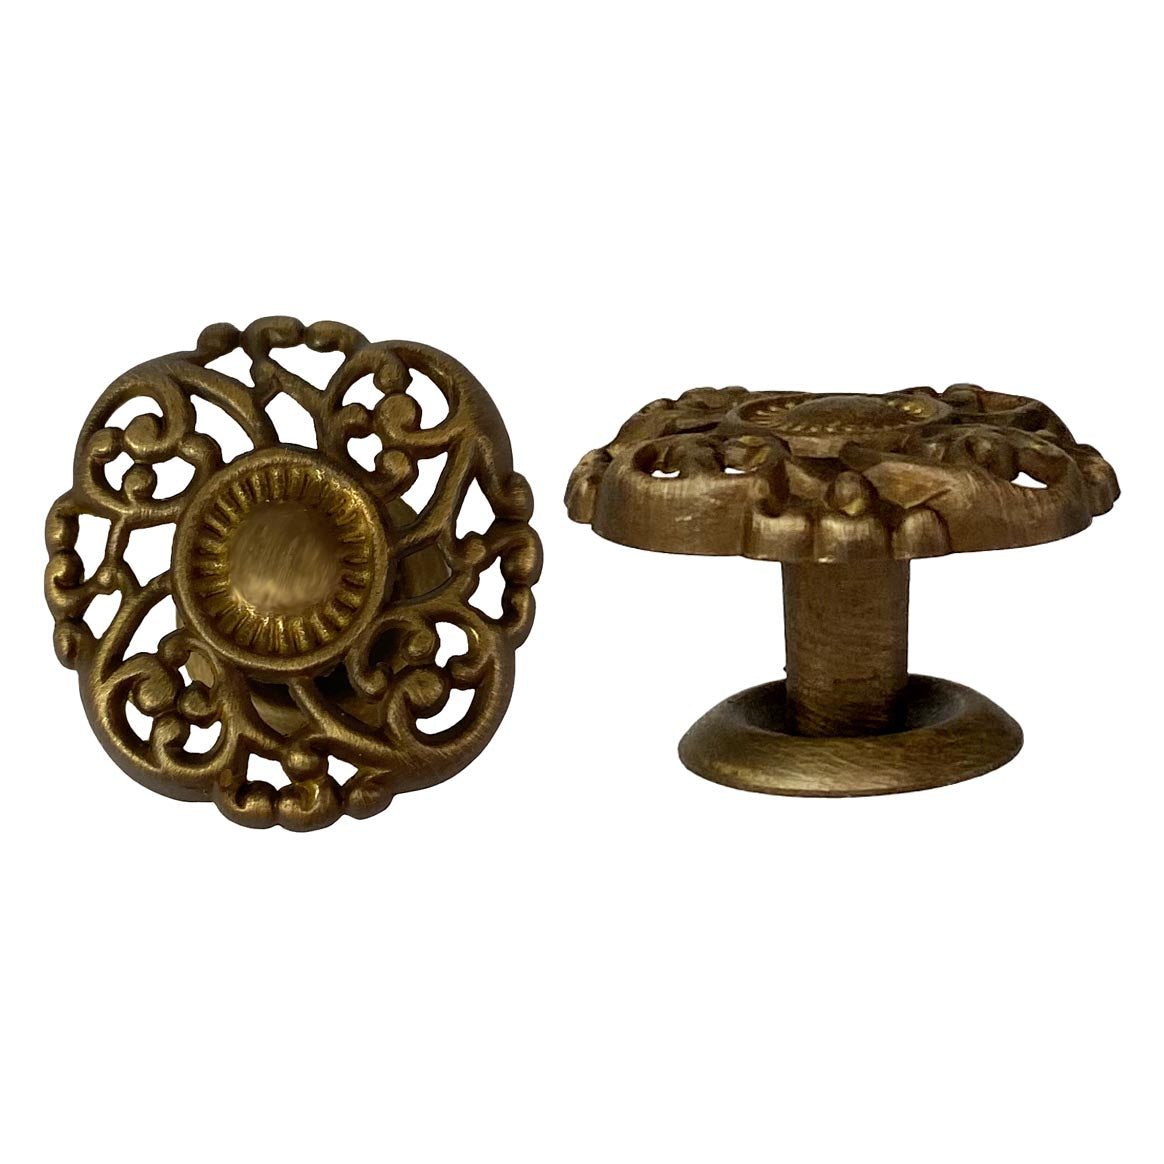 Antique Brass Victorian Knobs with Embossed Openwork design